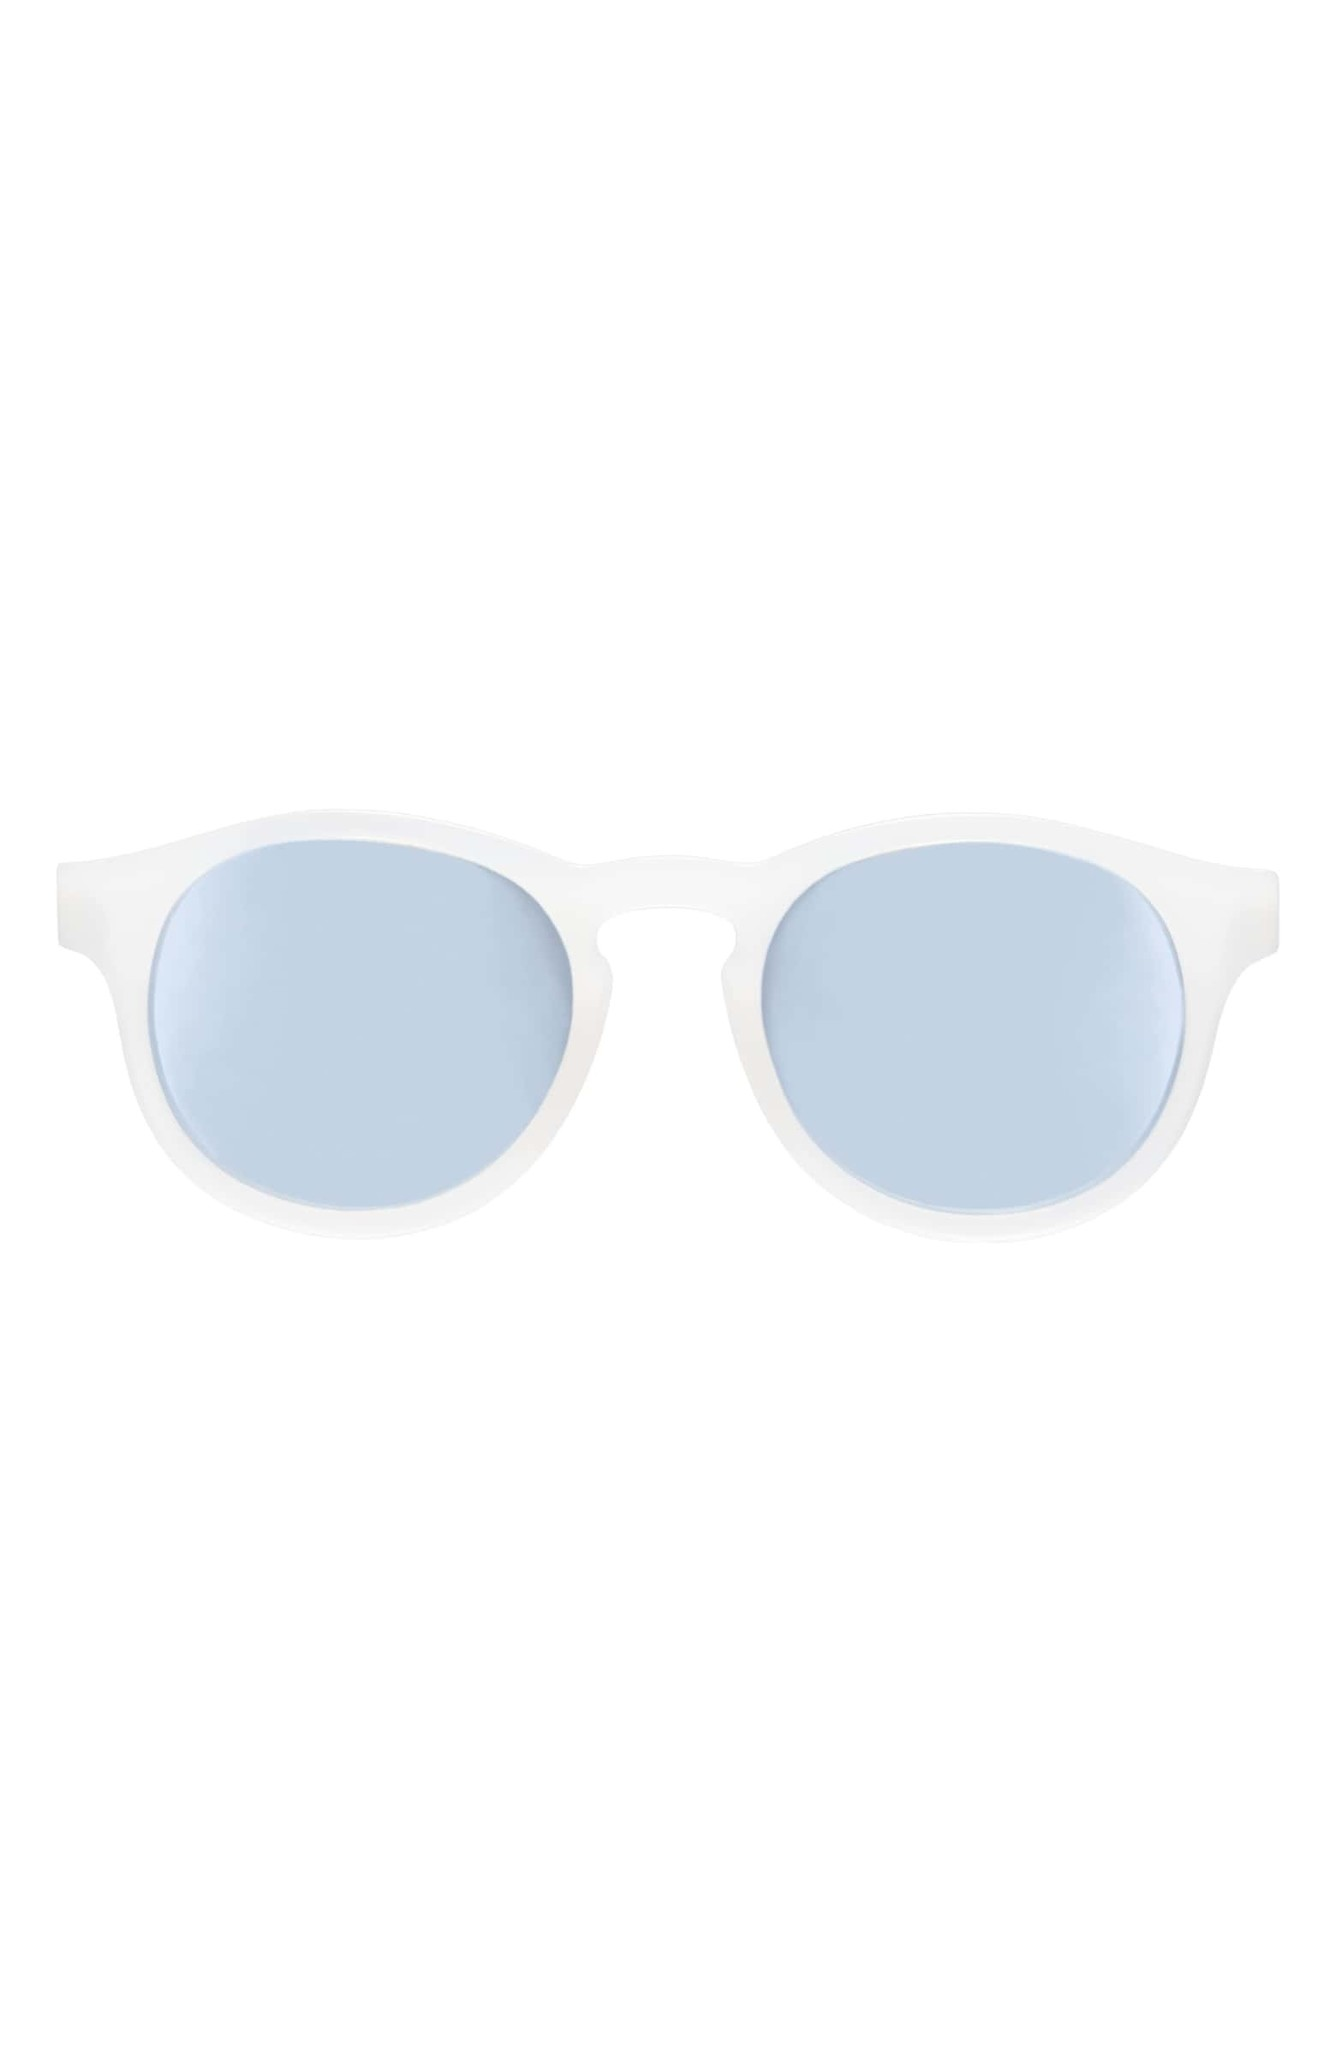 Babiators Babiators  Polarized - Jet Setter (Transparent + Light Blue Lens)